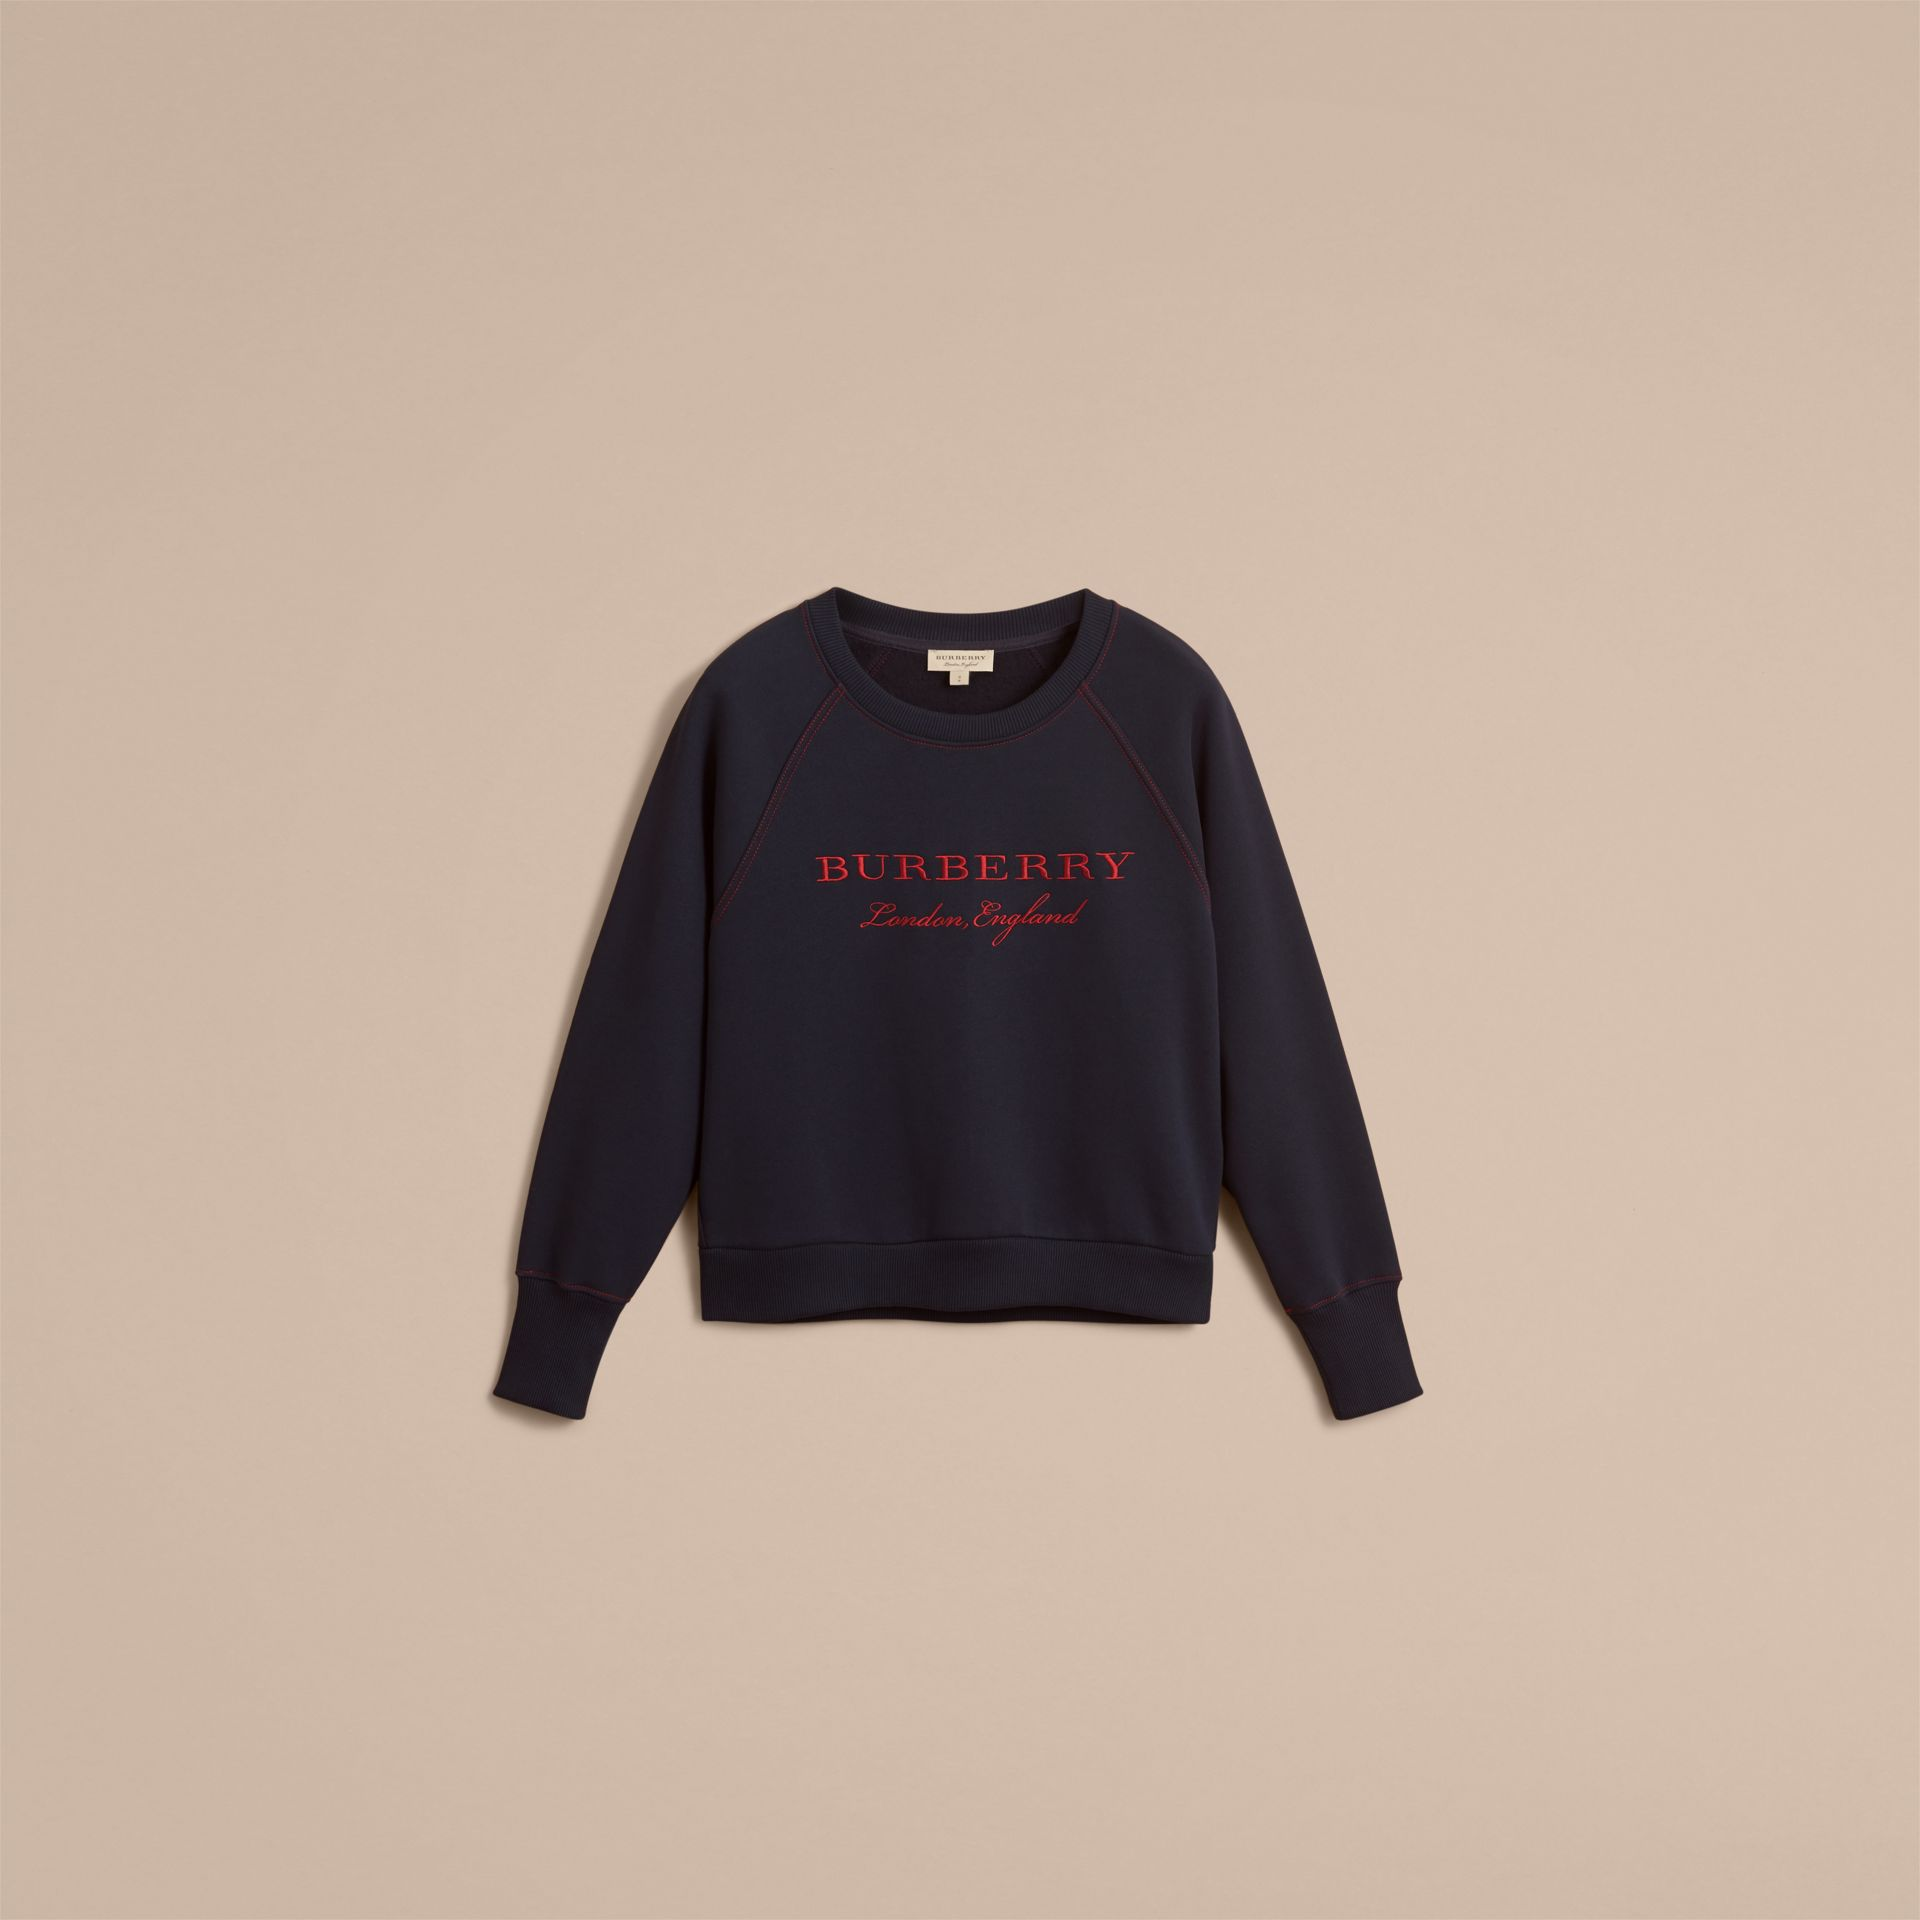 Embroidered Cotton Blend Jersey Sweatshirt in Navy - Women | Burberry Hong Kong - gallery image 4